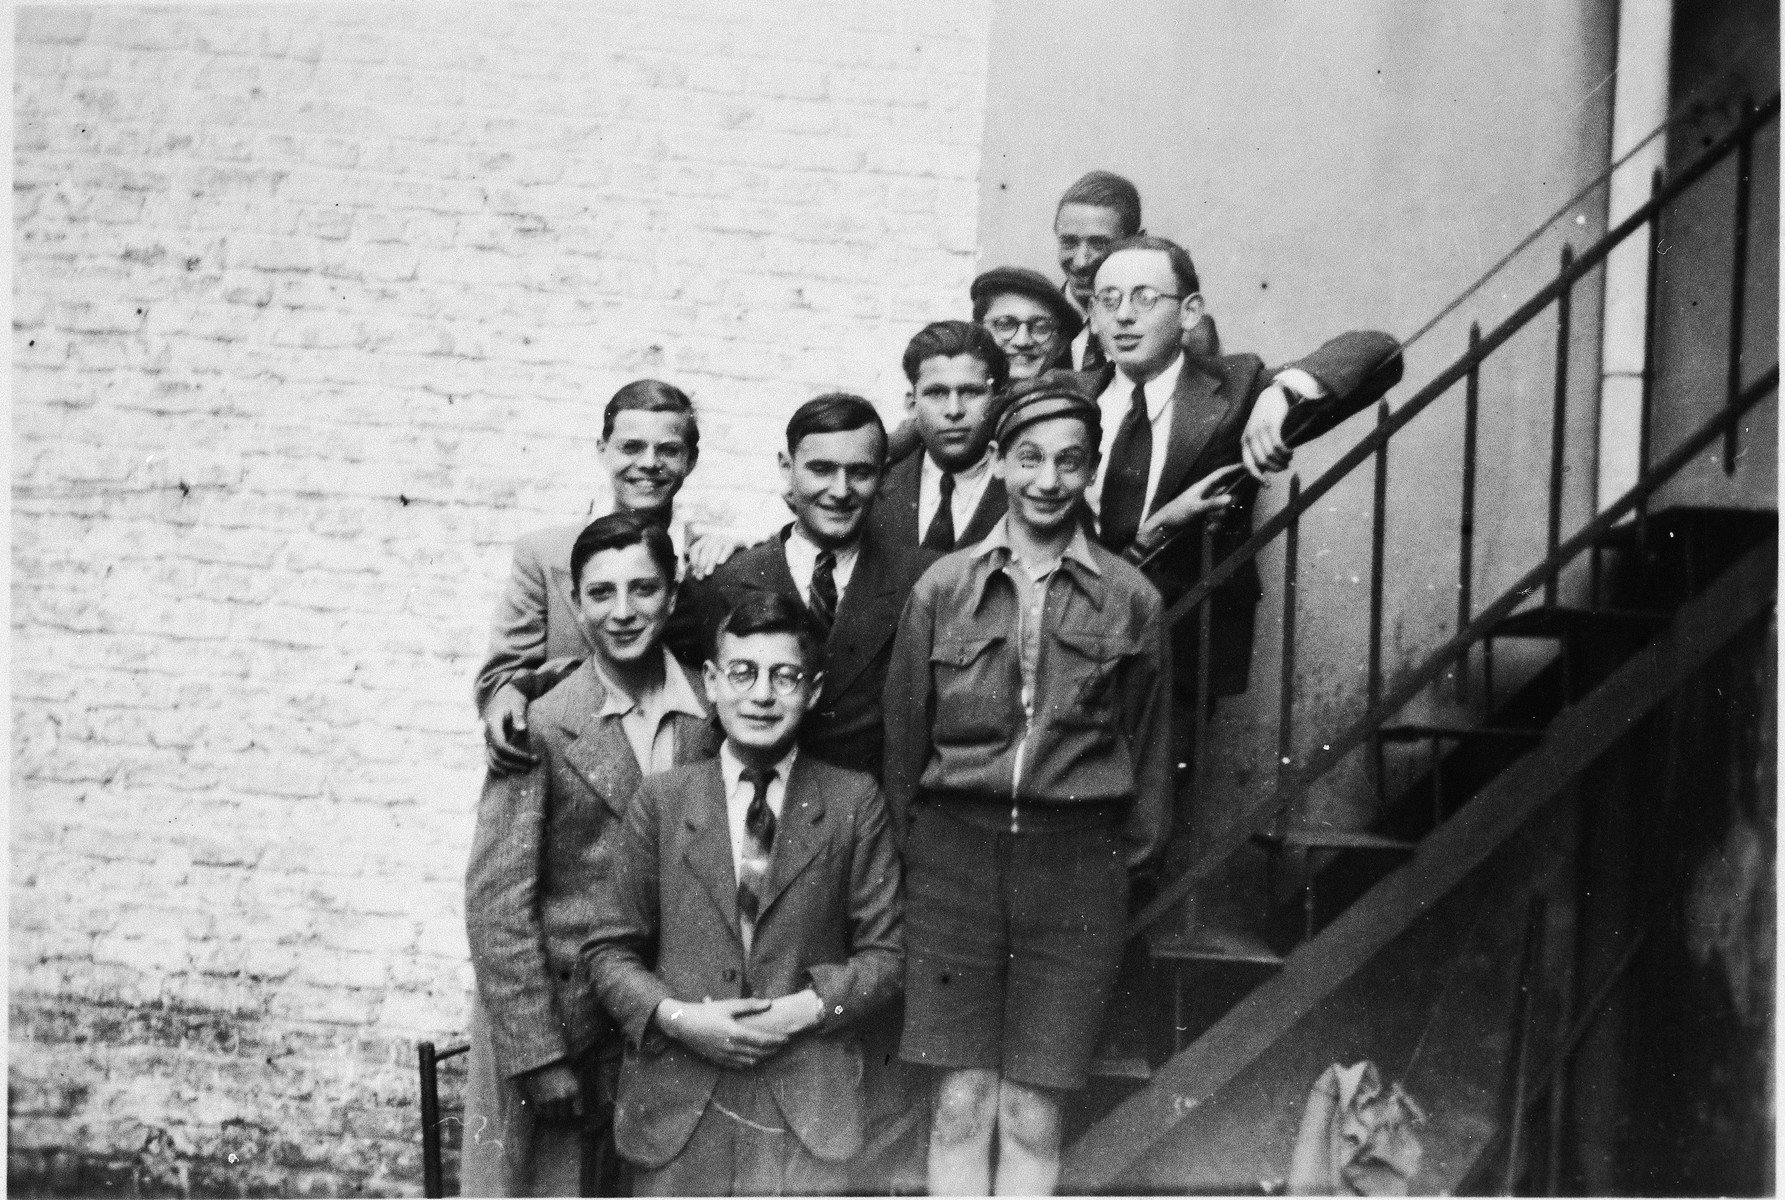 A group of Jewish refugee boys pose outside the Orphelinat Israelite de Bruxelles children's home on the rue des Patriotes.